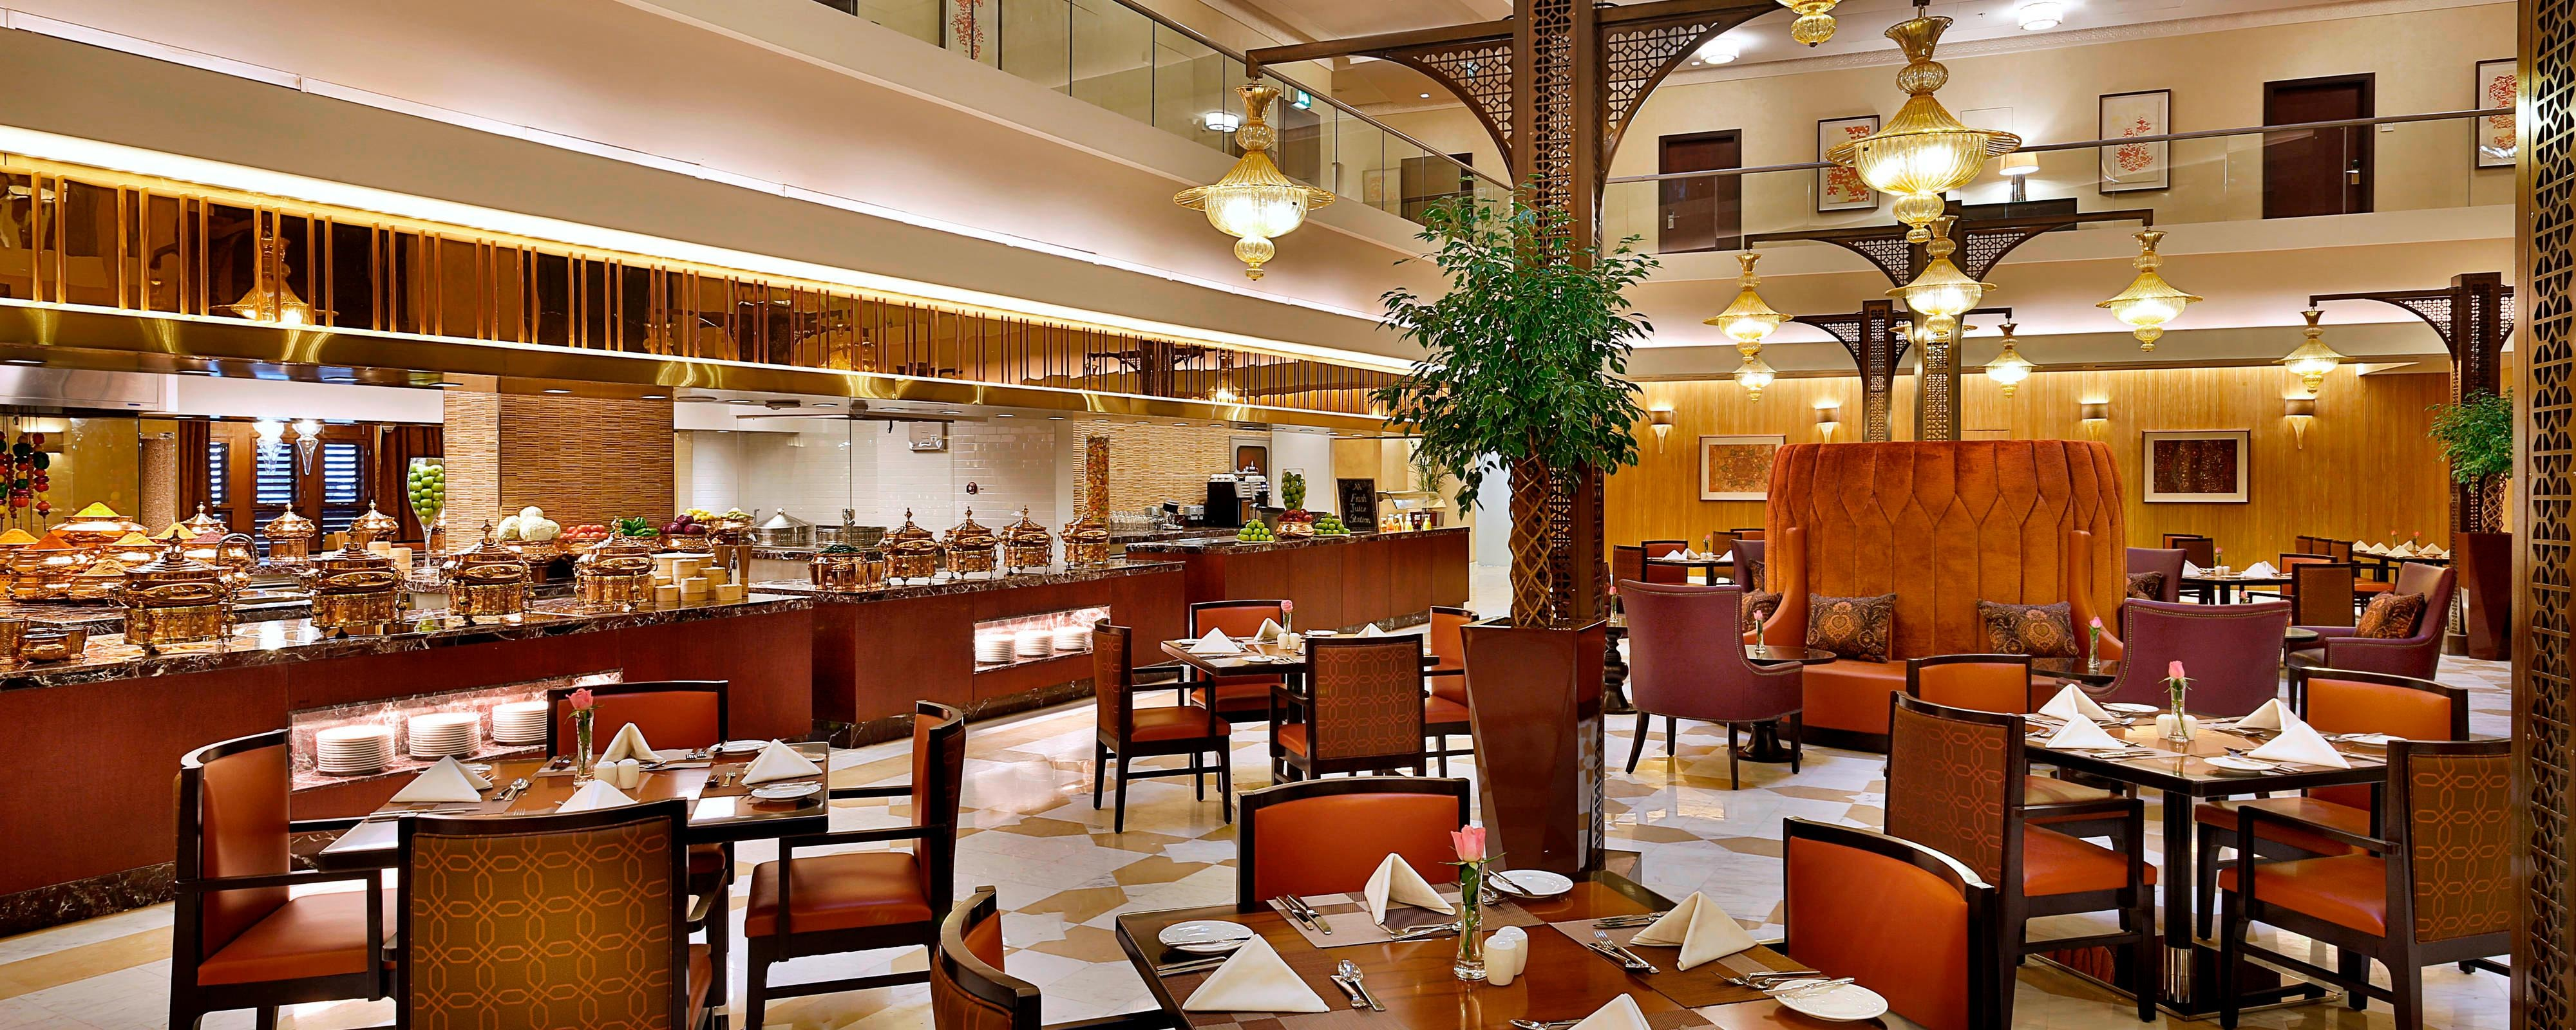 Restaurant im Marriott Makkah